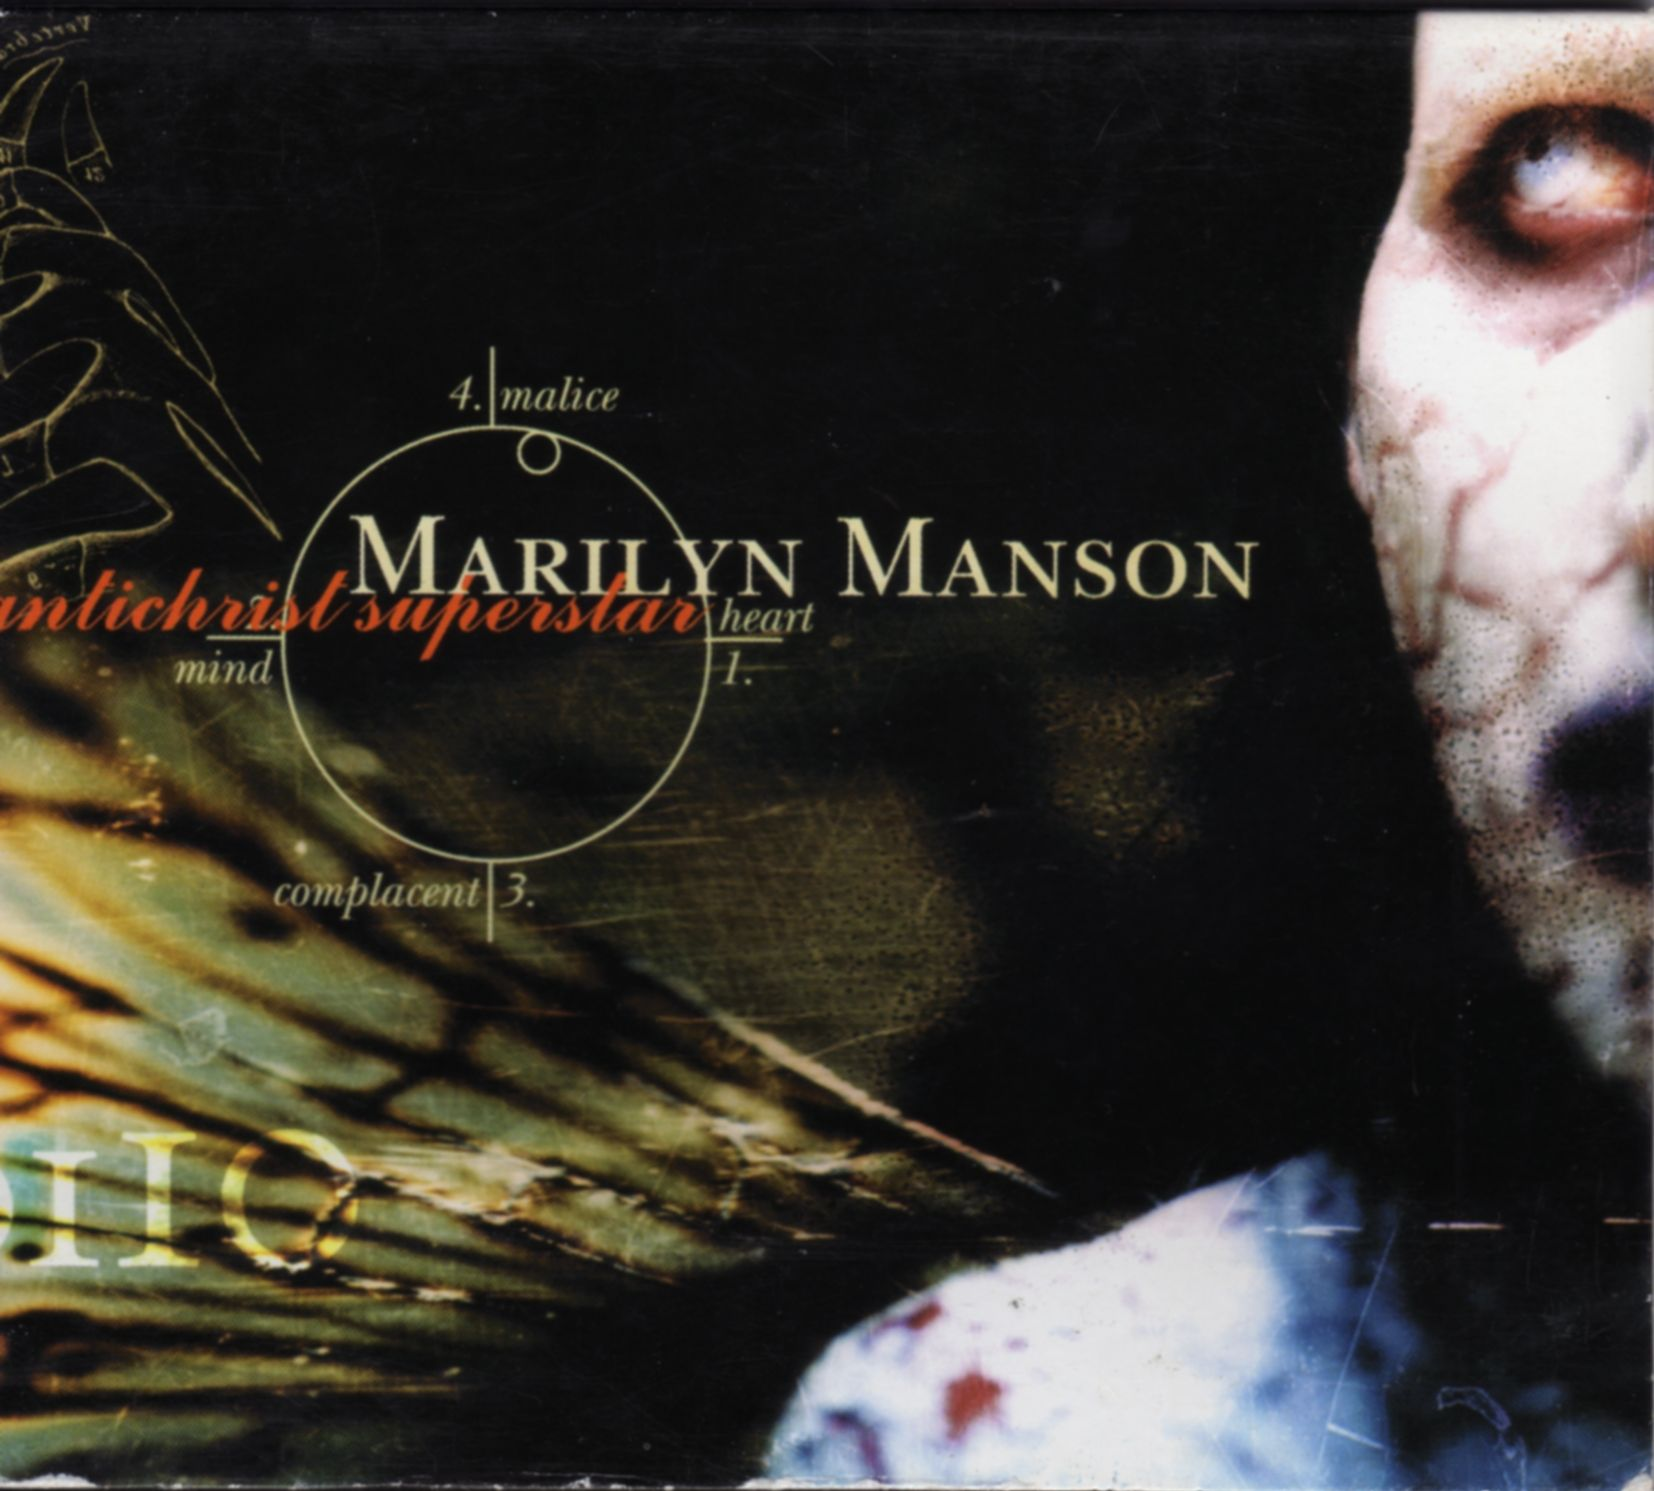 Marilyn Manson - Antichrist Superstar album cover